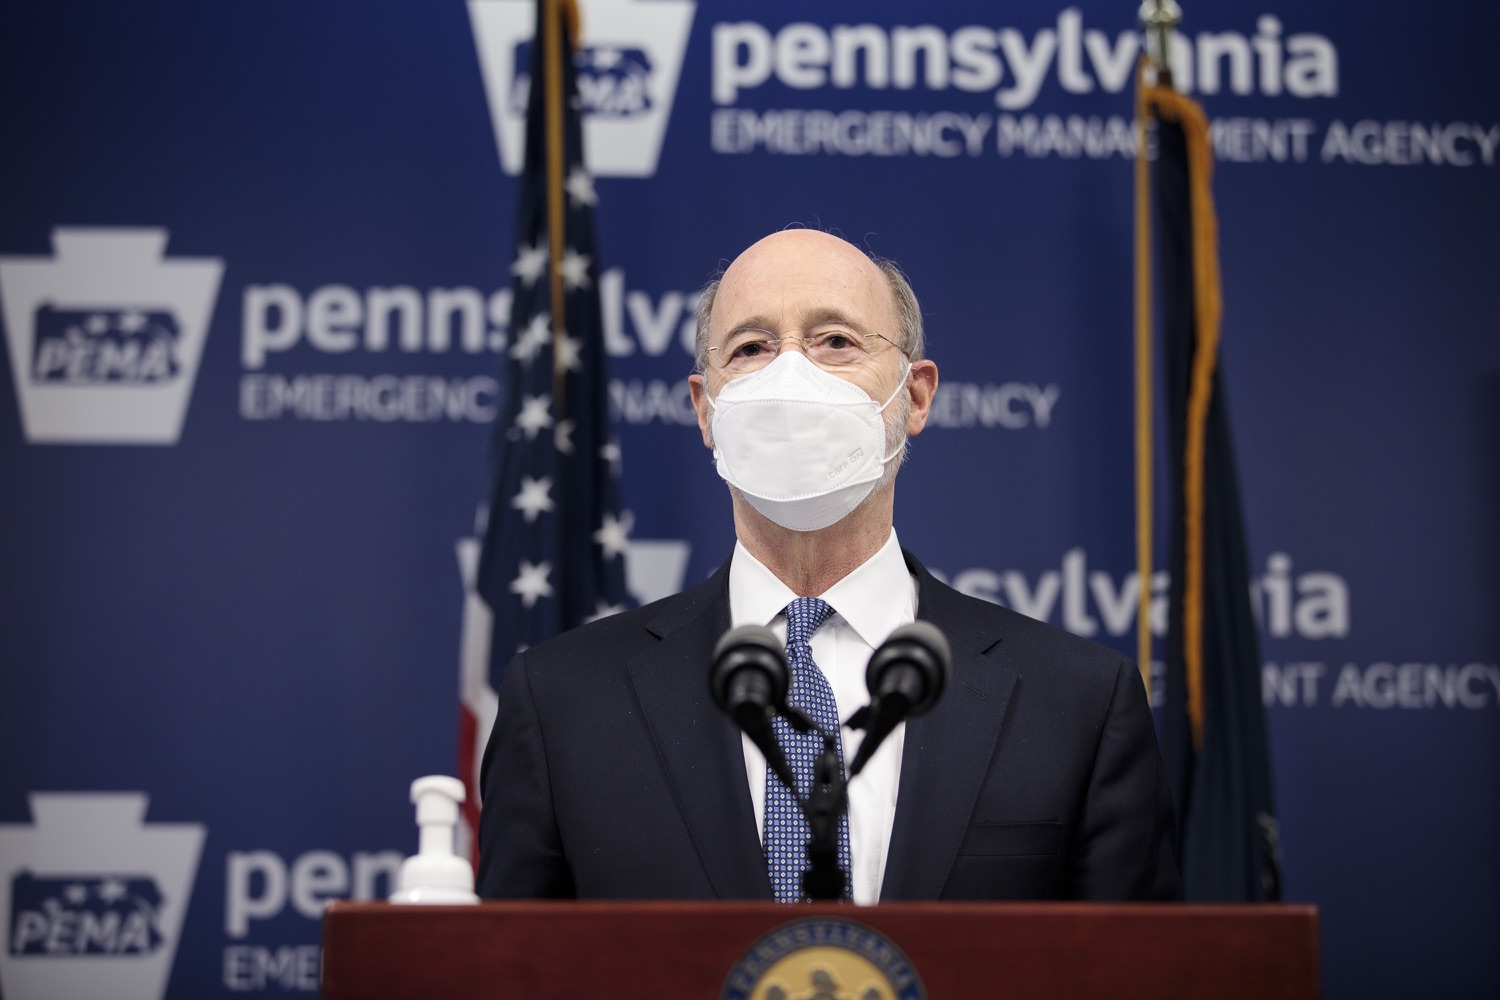 "<a href=""https://filesource.wostreaming.net/commonwealthofpa/photo/18551_gov_charterReform_dz_06.jpg"" target=""_blank"">⇣ Download Photo<br></a>Pennsylvania Governor Tom Wolf speaks to the press.  The urgent need to hold charter schools and cyber charter schools accountable has increased as enrollment and taxpayer costs have swelled during the COVID-19 pandemic. Governor Tom Wolf today unveiled a common sense and fair bipartisan plan that protects students, parents and taxpayers. The plan holds low-performing charter schools accountable to improve the quality of education, protects taxpayers by reining in skyrocketing charter school costs and increases the transparency of for-profit companies that run many charter schools. Harrisburg, PA  February 26, 2021"